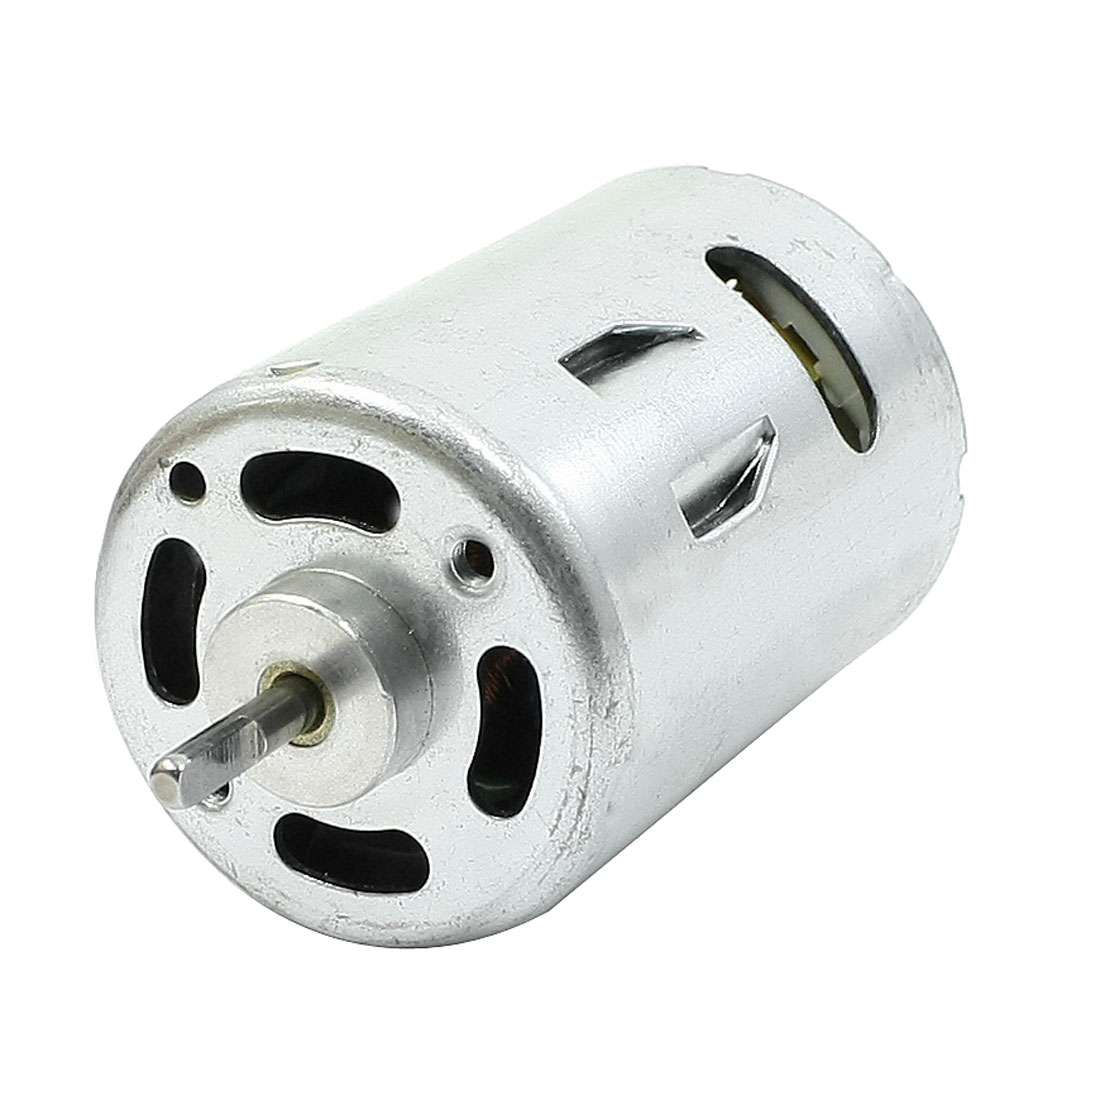 DC-12V-8000RPM-12mm-x-3mm-Shaft-5mm-Diameter-Replacement-Mini-Motor